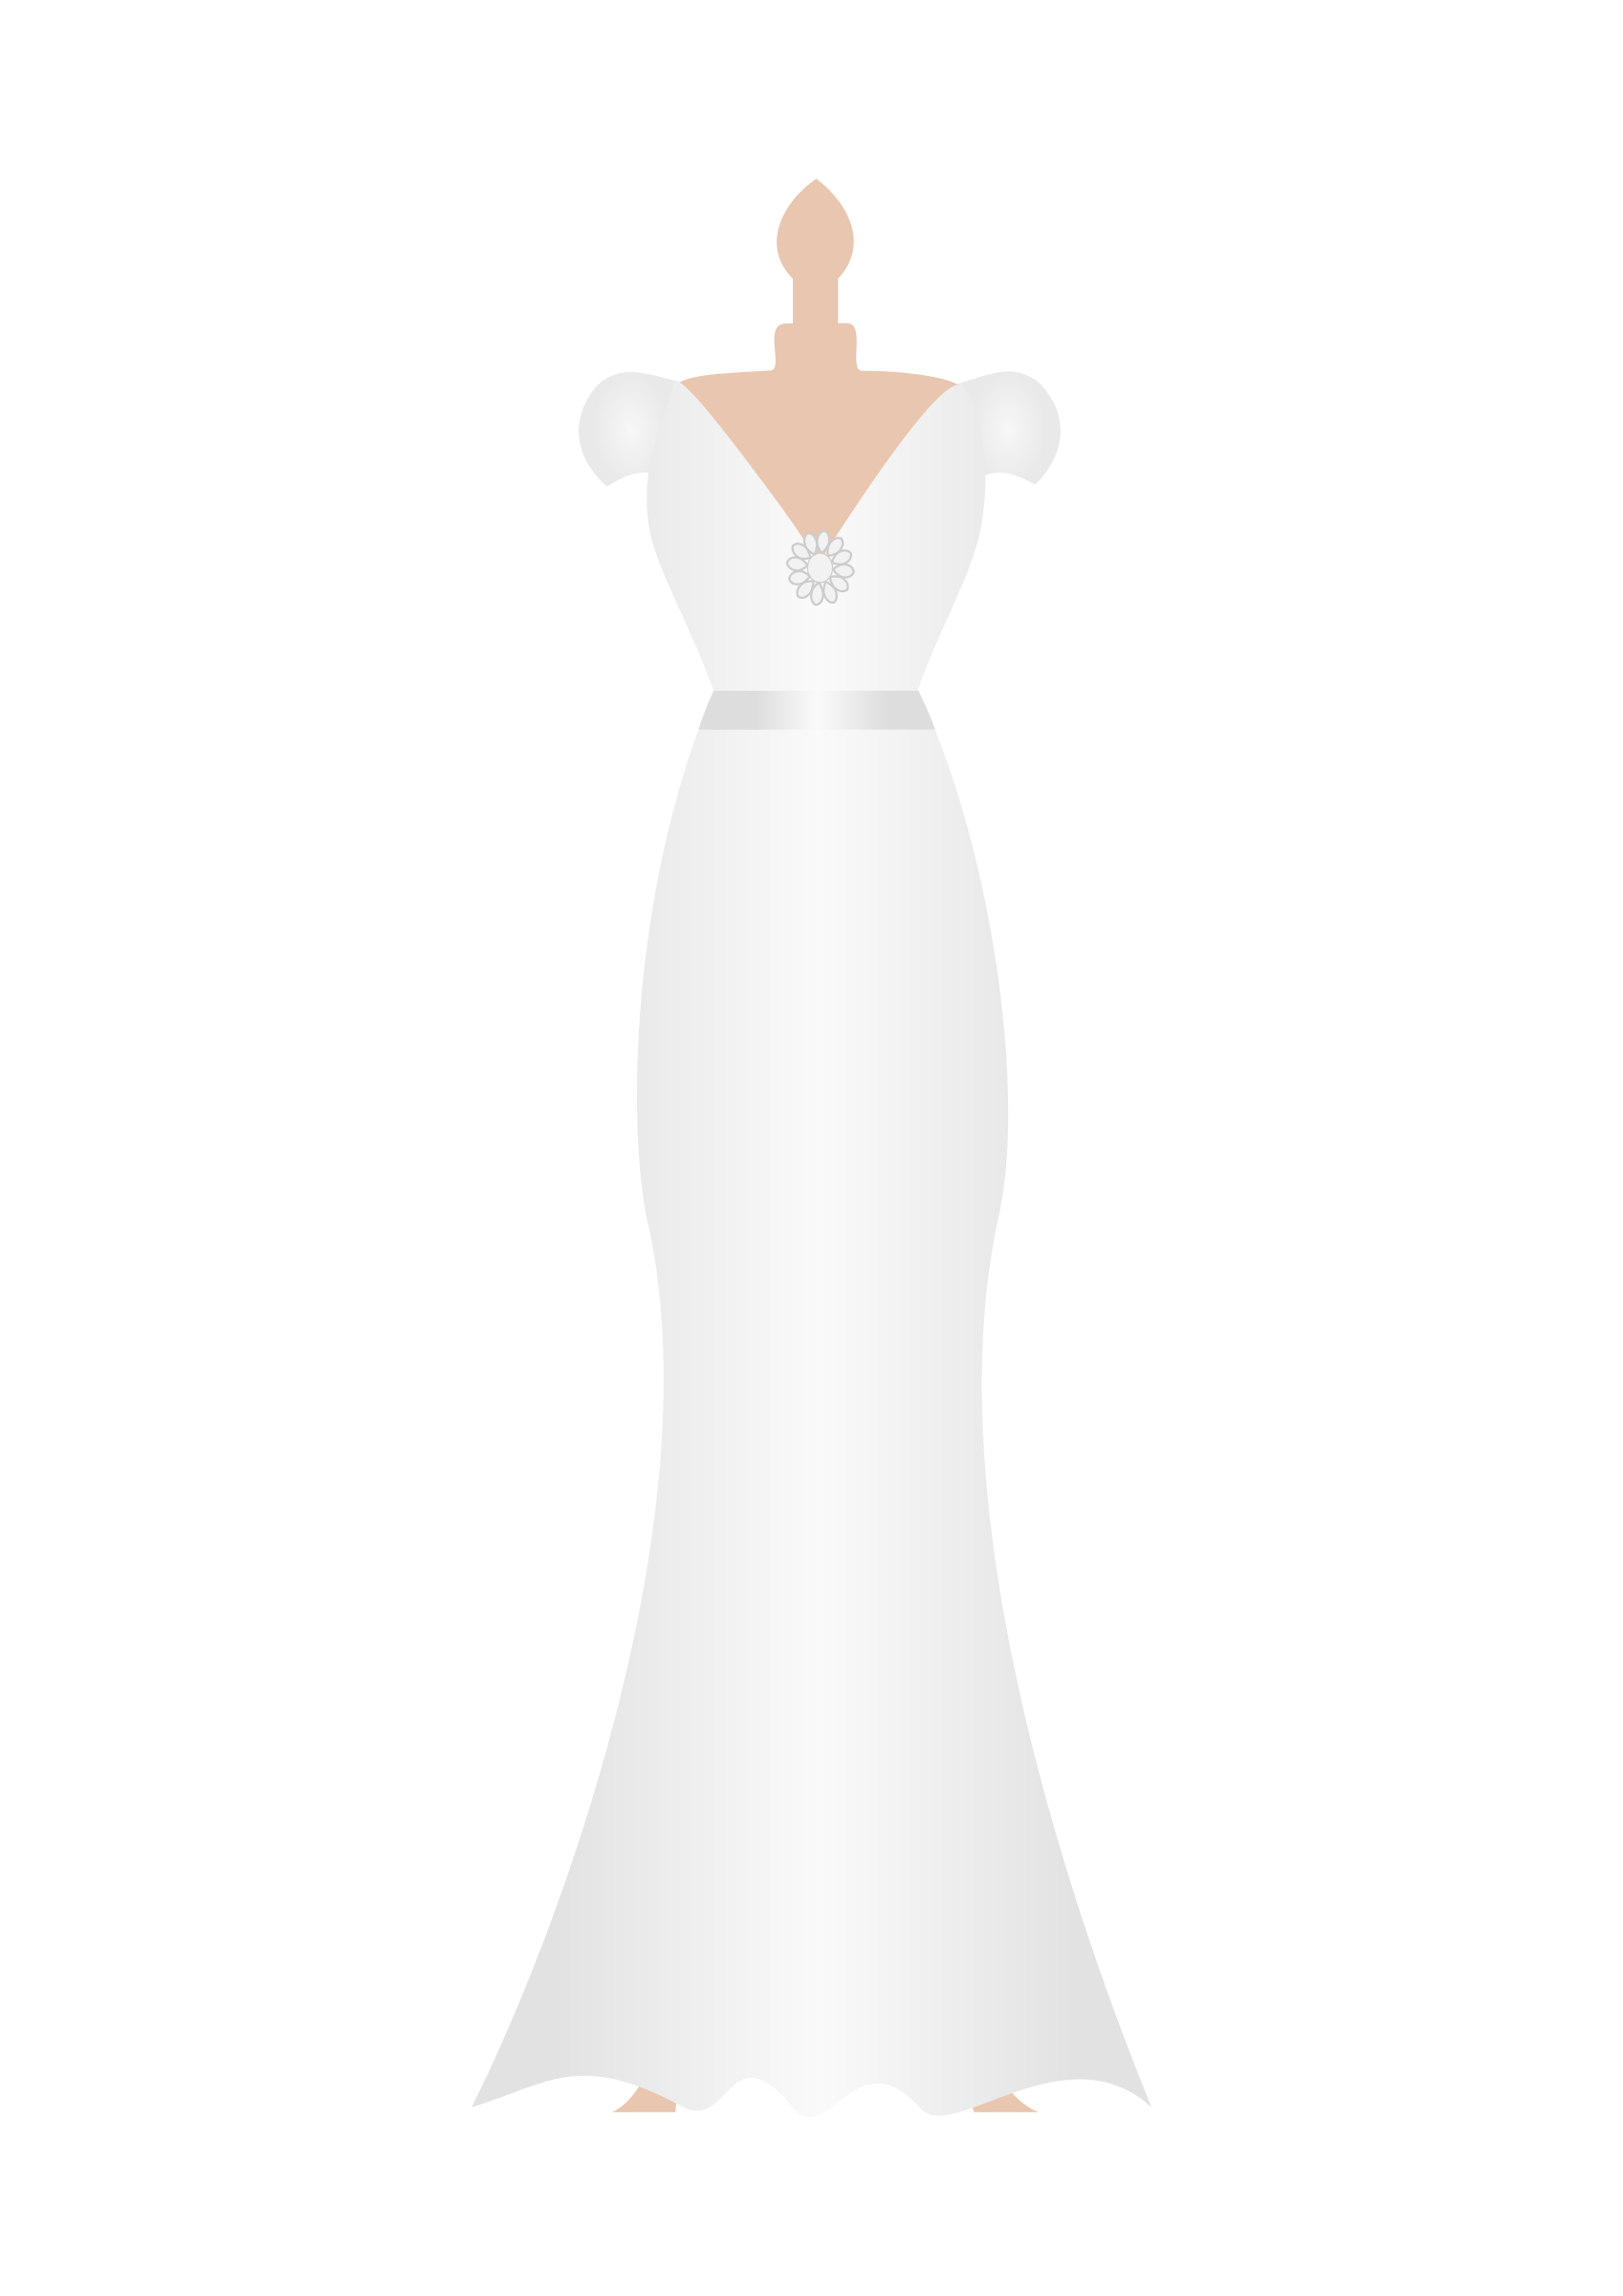 Gown clipart elegant bridal Free dress Wedding wedding Images